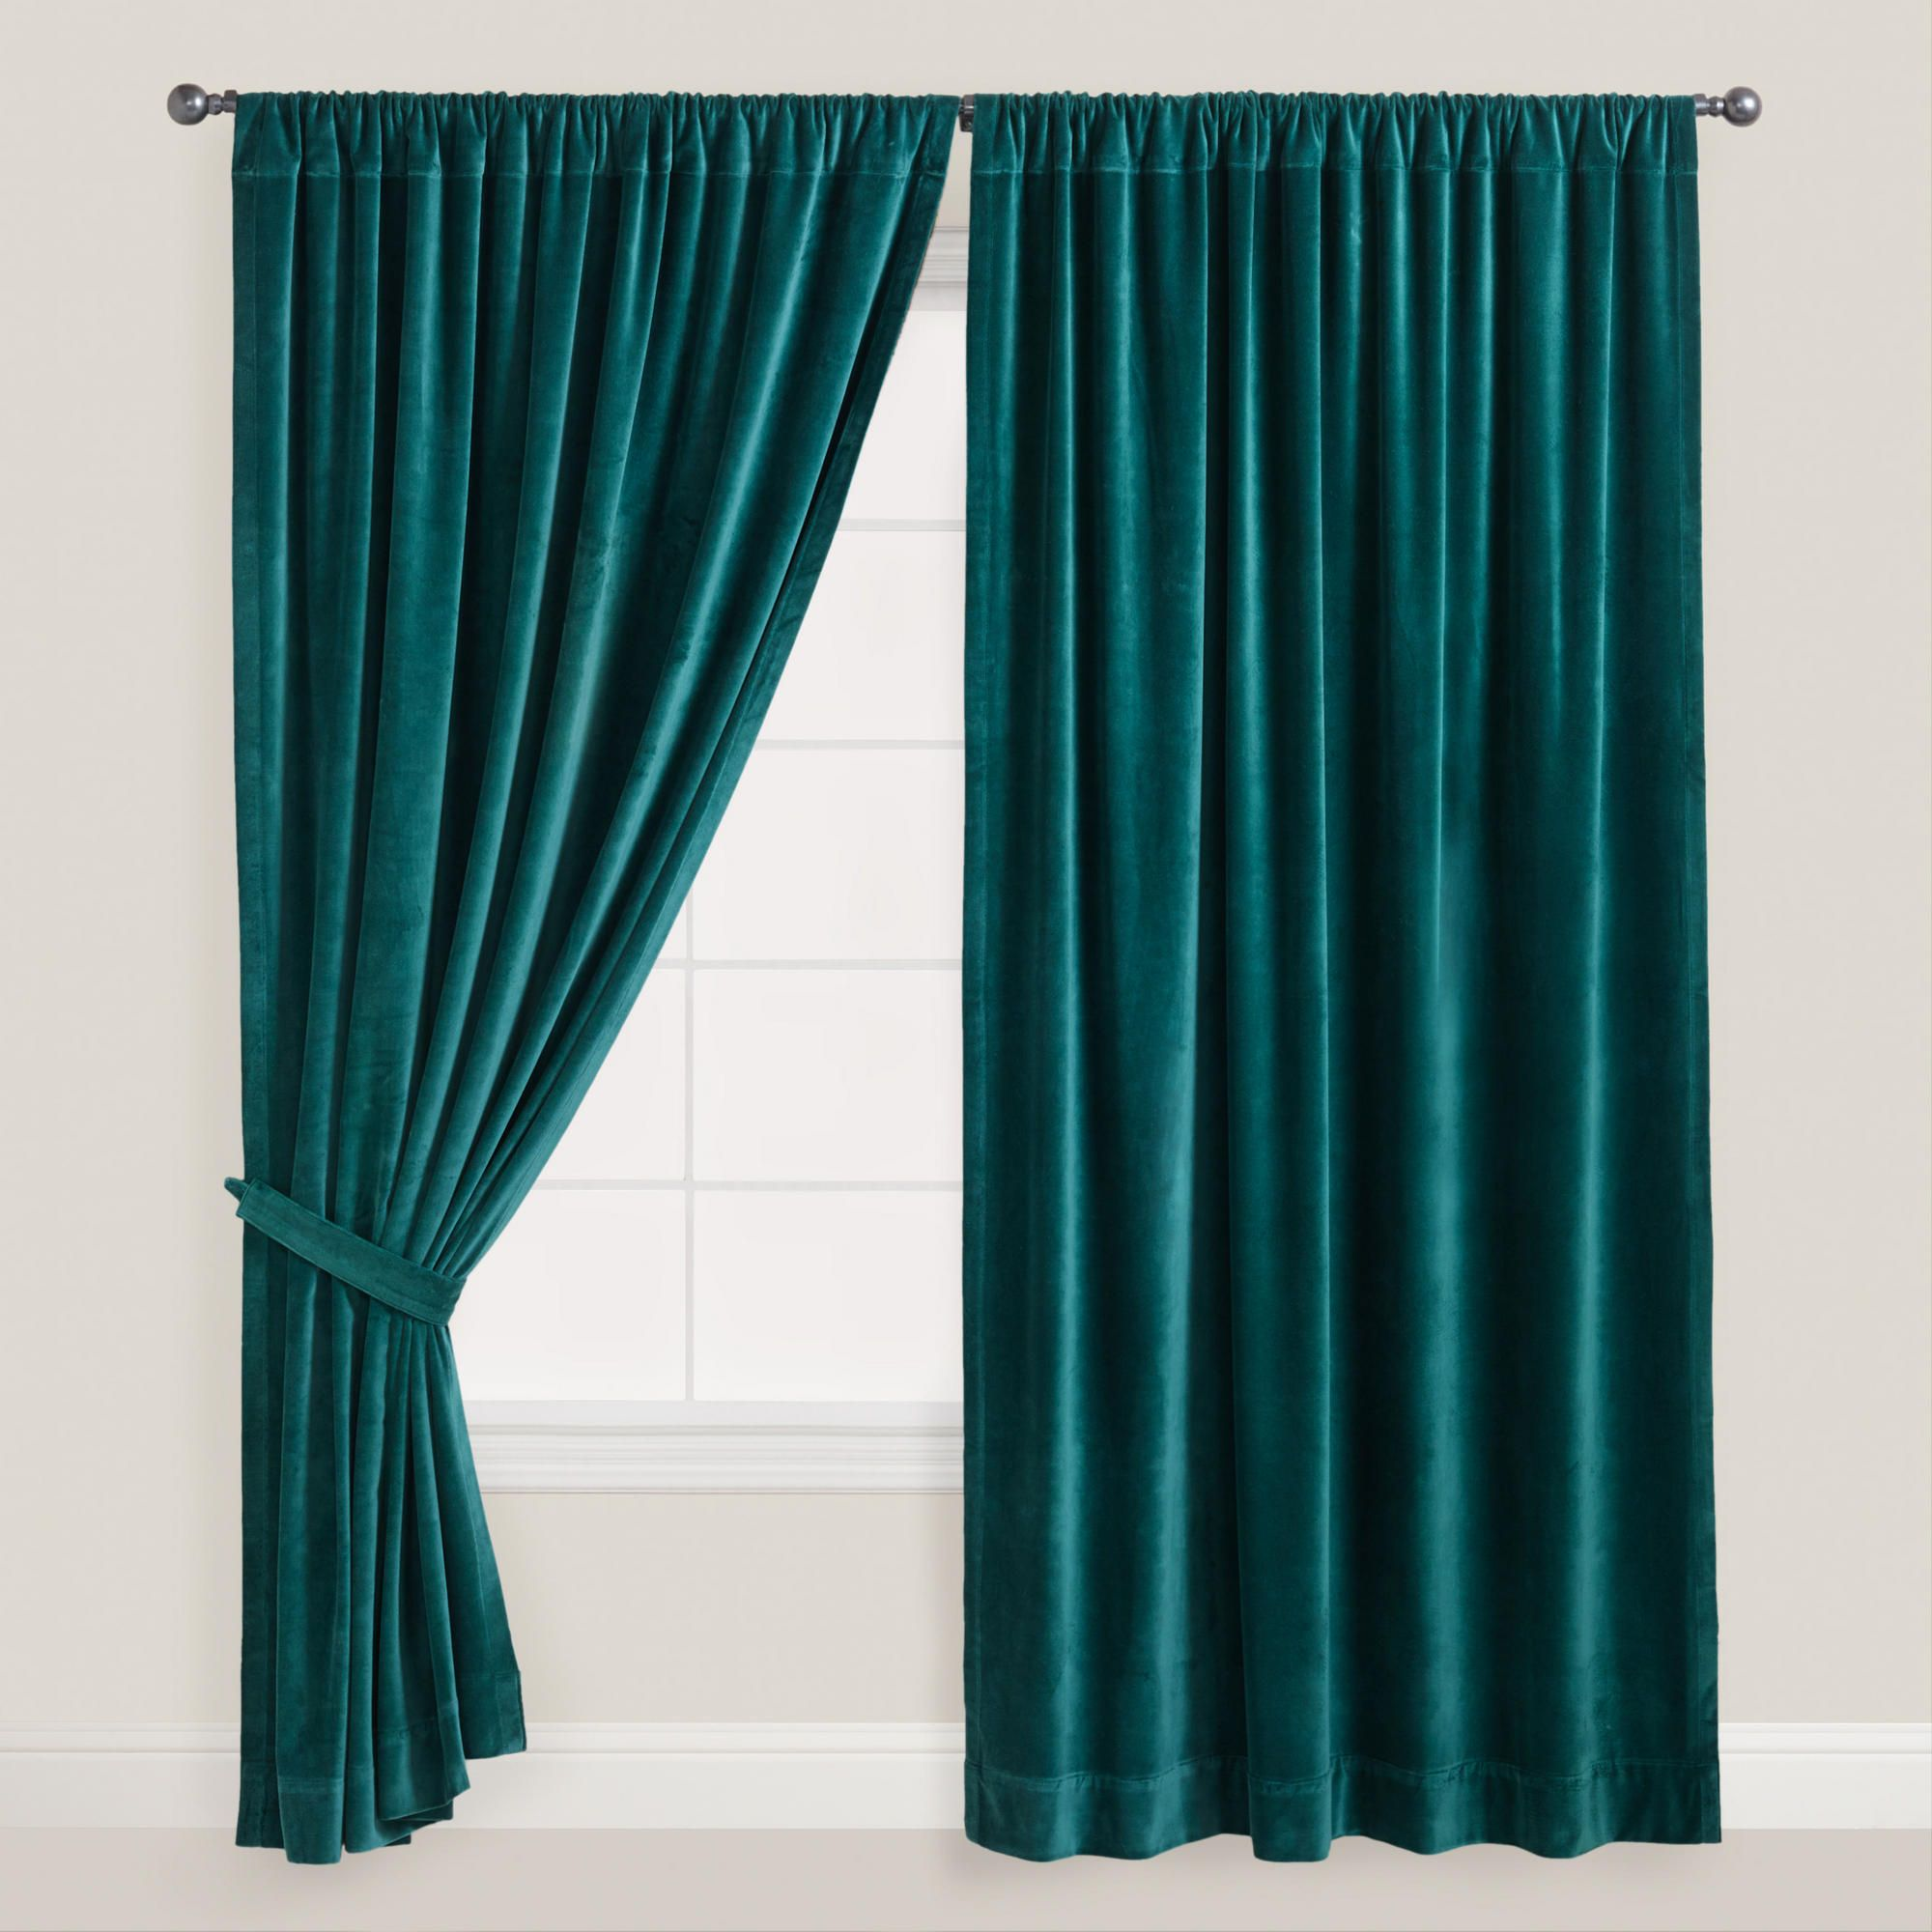 Grüne Vorhänge Mallard Velvet Curtain World Market Home Pinterest